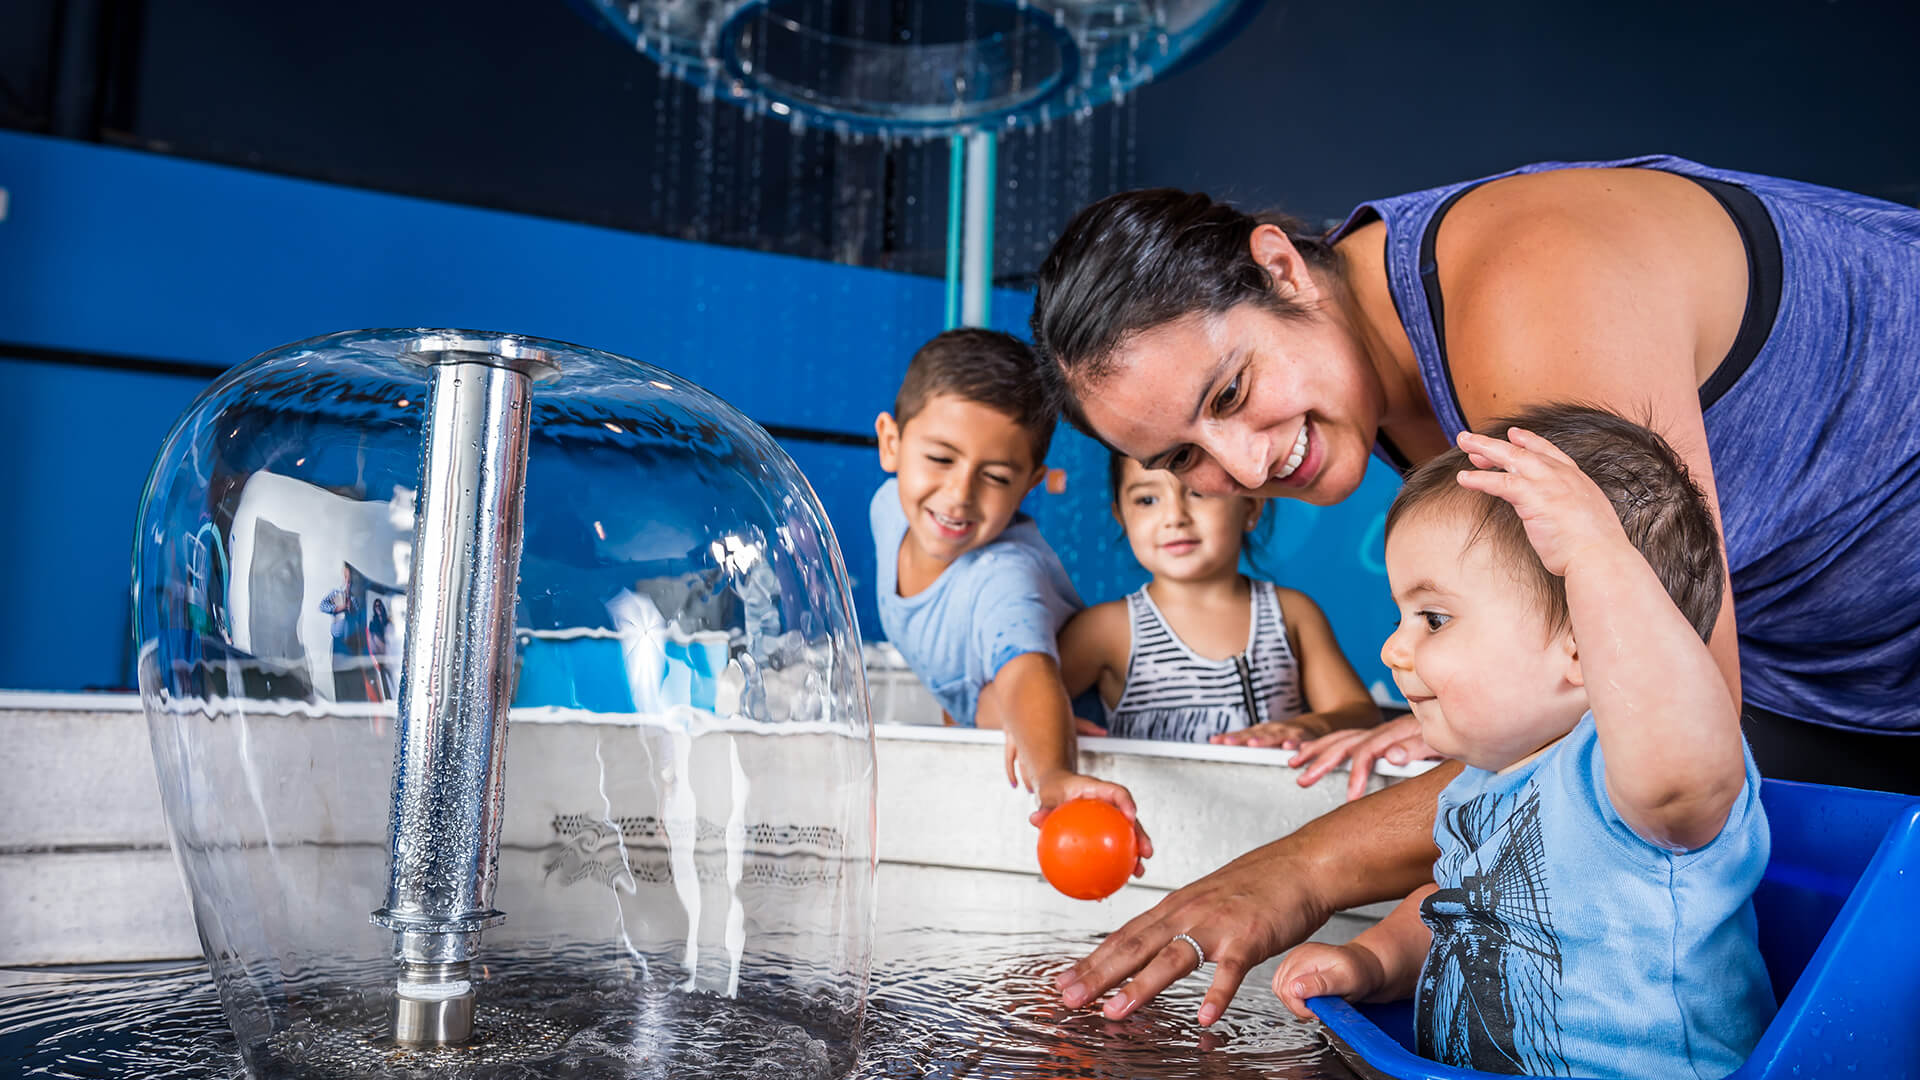 A mother and her children splash in the water play area of the KidsTown exhibit.